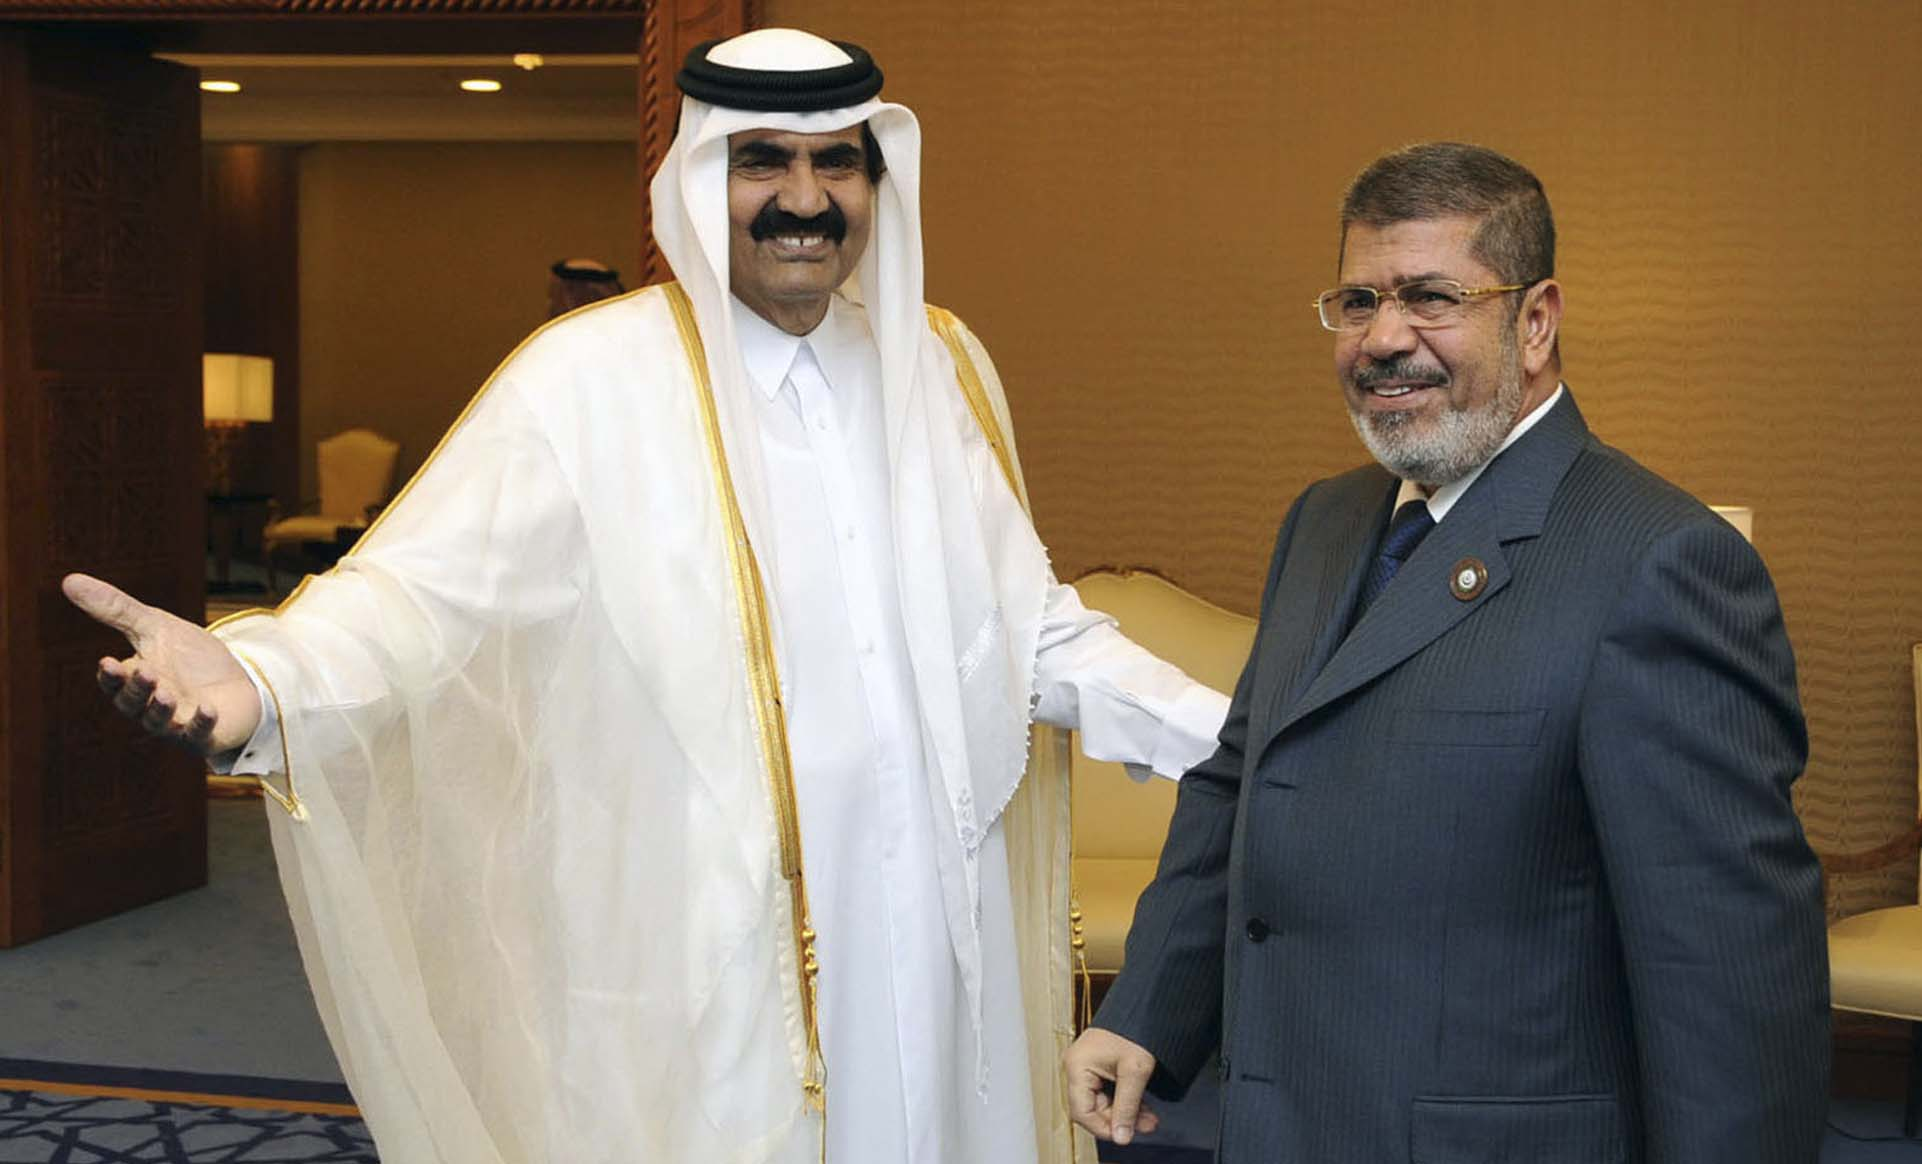 Qatar's Emir Sheikh Hamad bin Khalifa al-Thani greets Egypt's President Mohamed Mursi during the Arab League summit in Doha